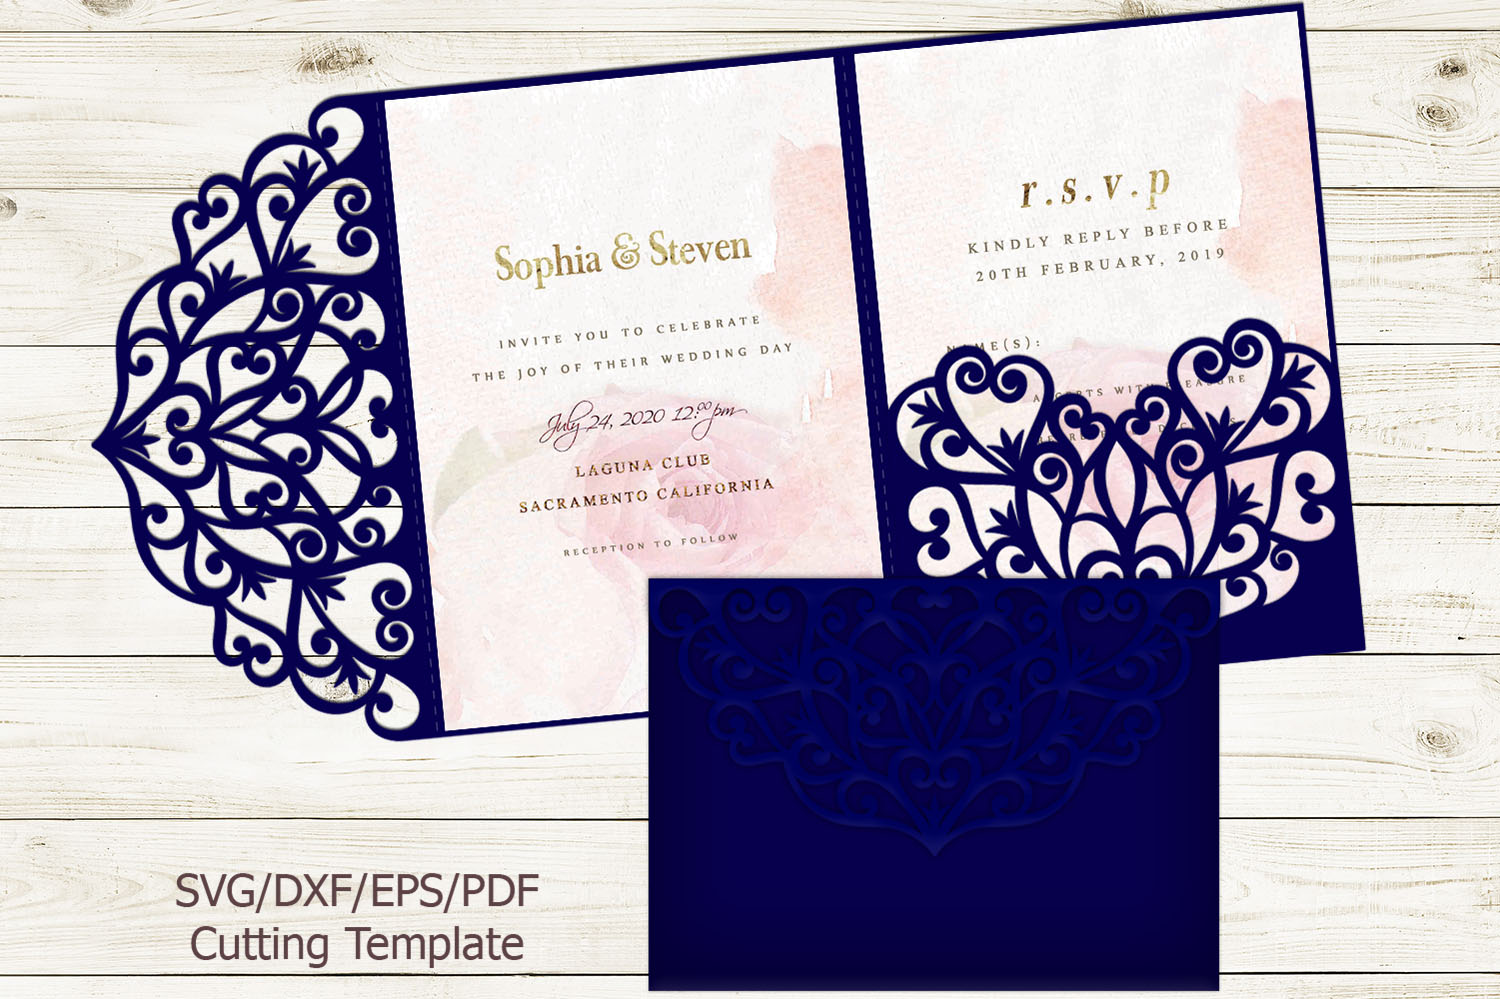 Download Free Trifold Wedding Invitation Svg Graphic By Cornelia Creative for Cricut Explore, Silhouette and other cutting machines.